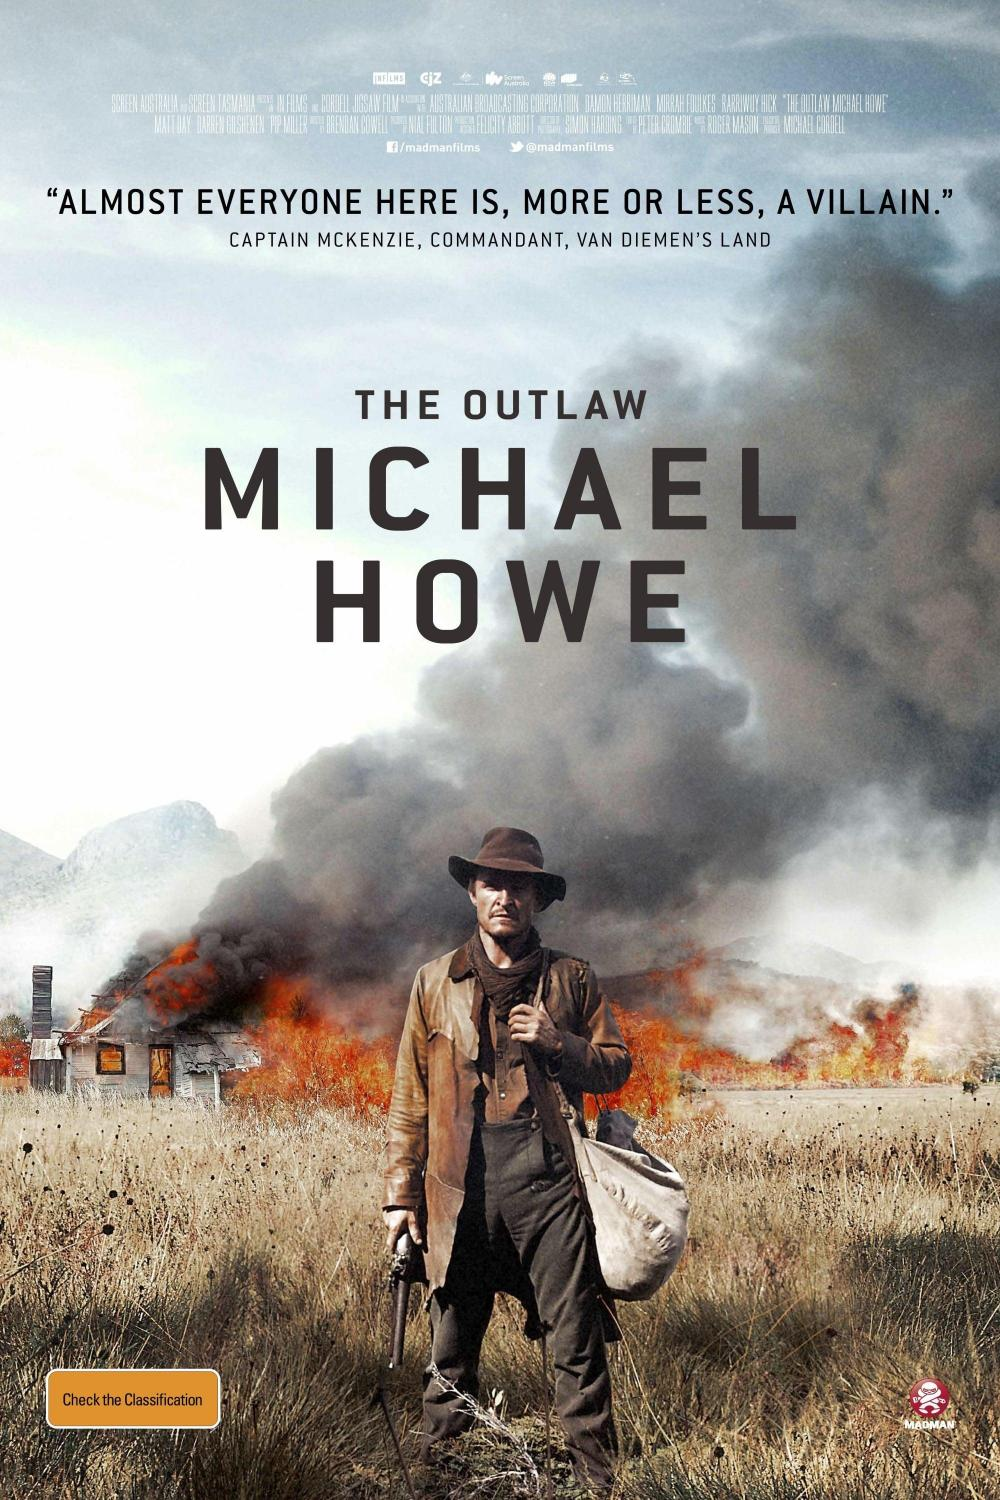 The Outlaw Michael Howe (2014)